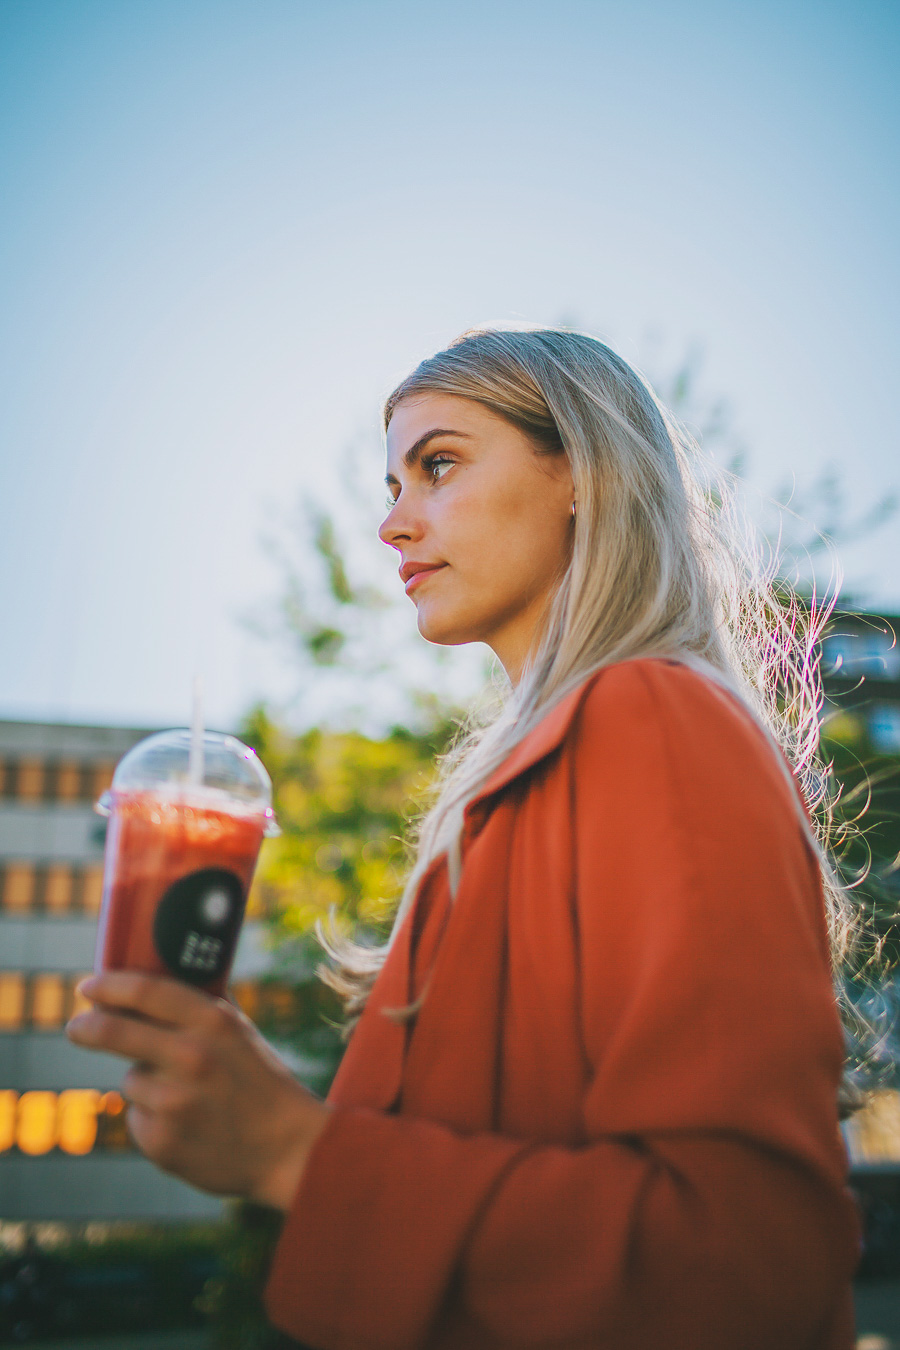 Girl holding a strawberry smoothie